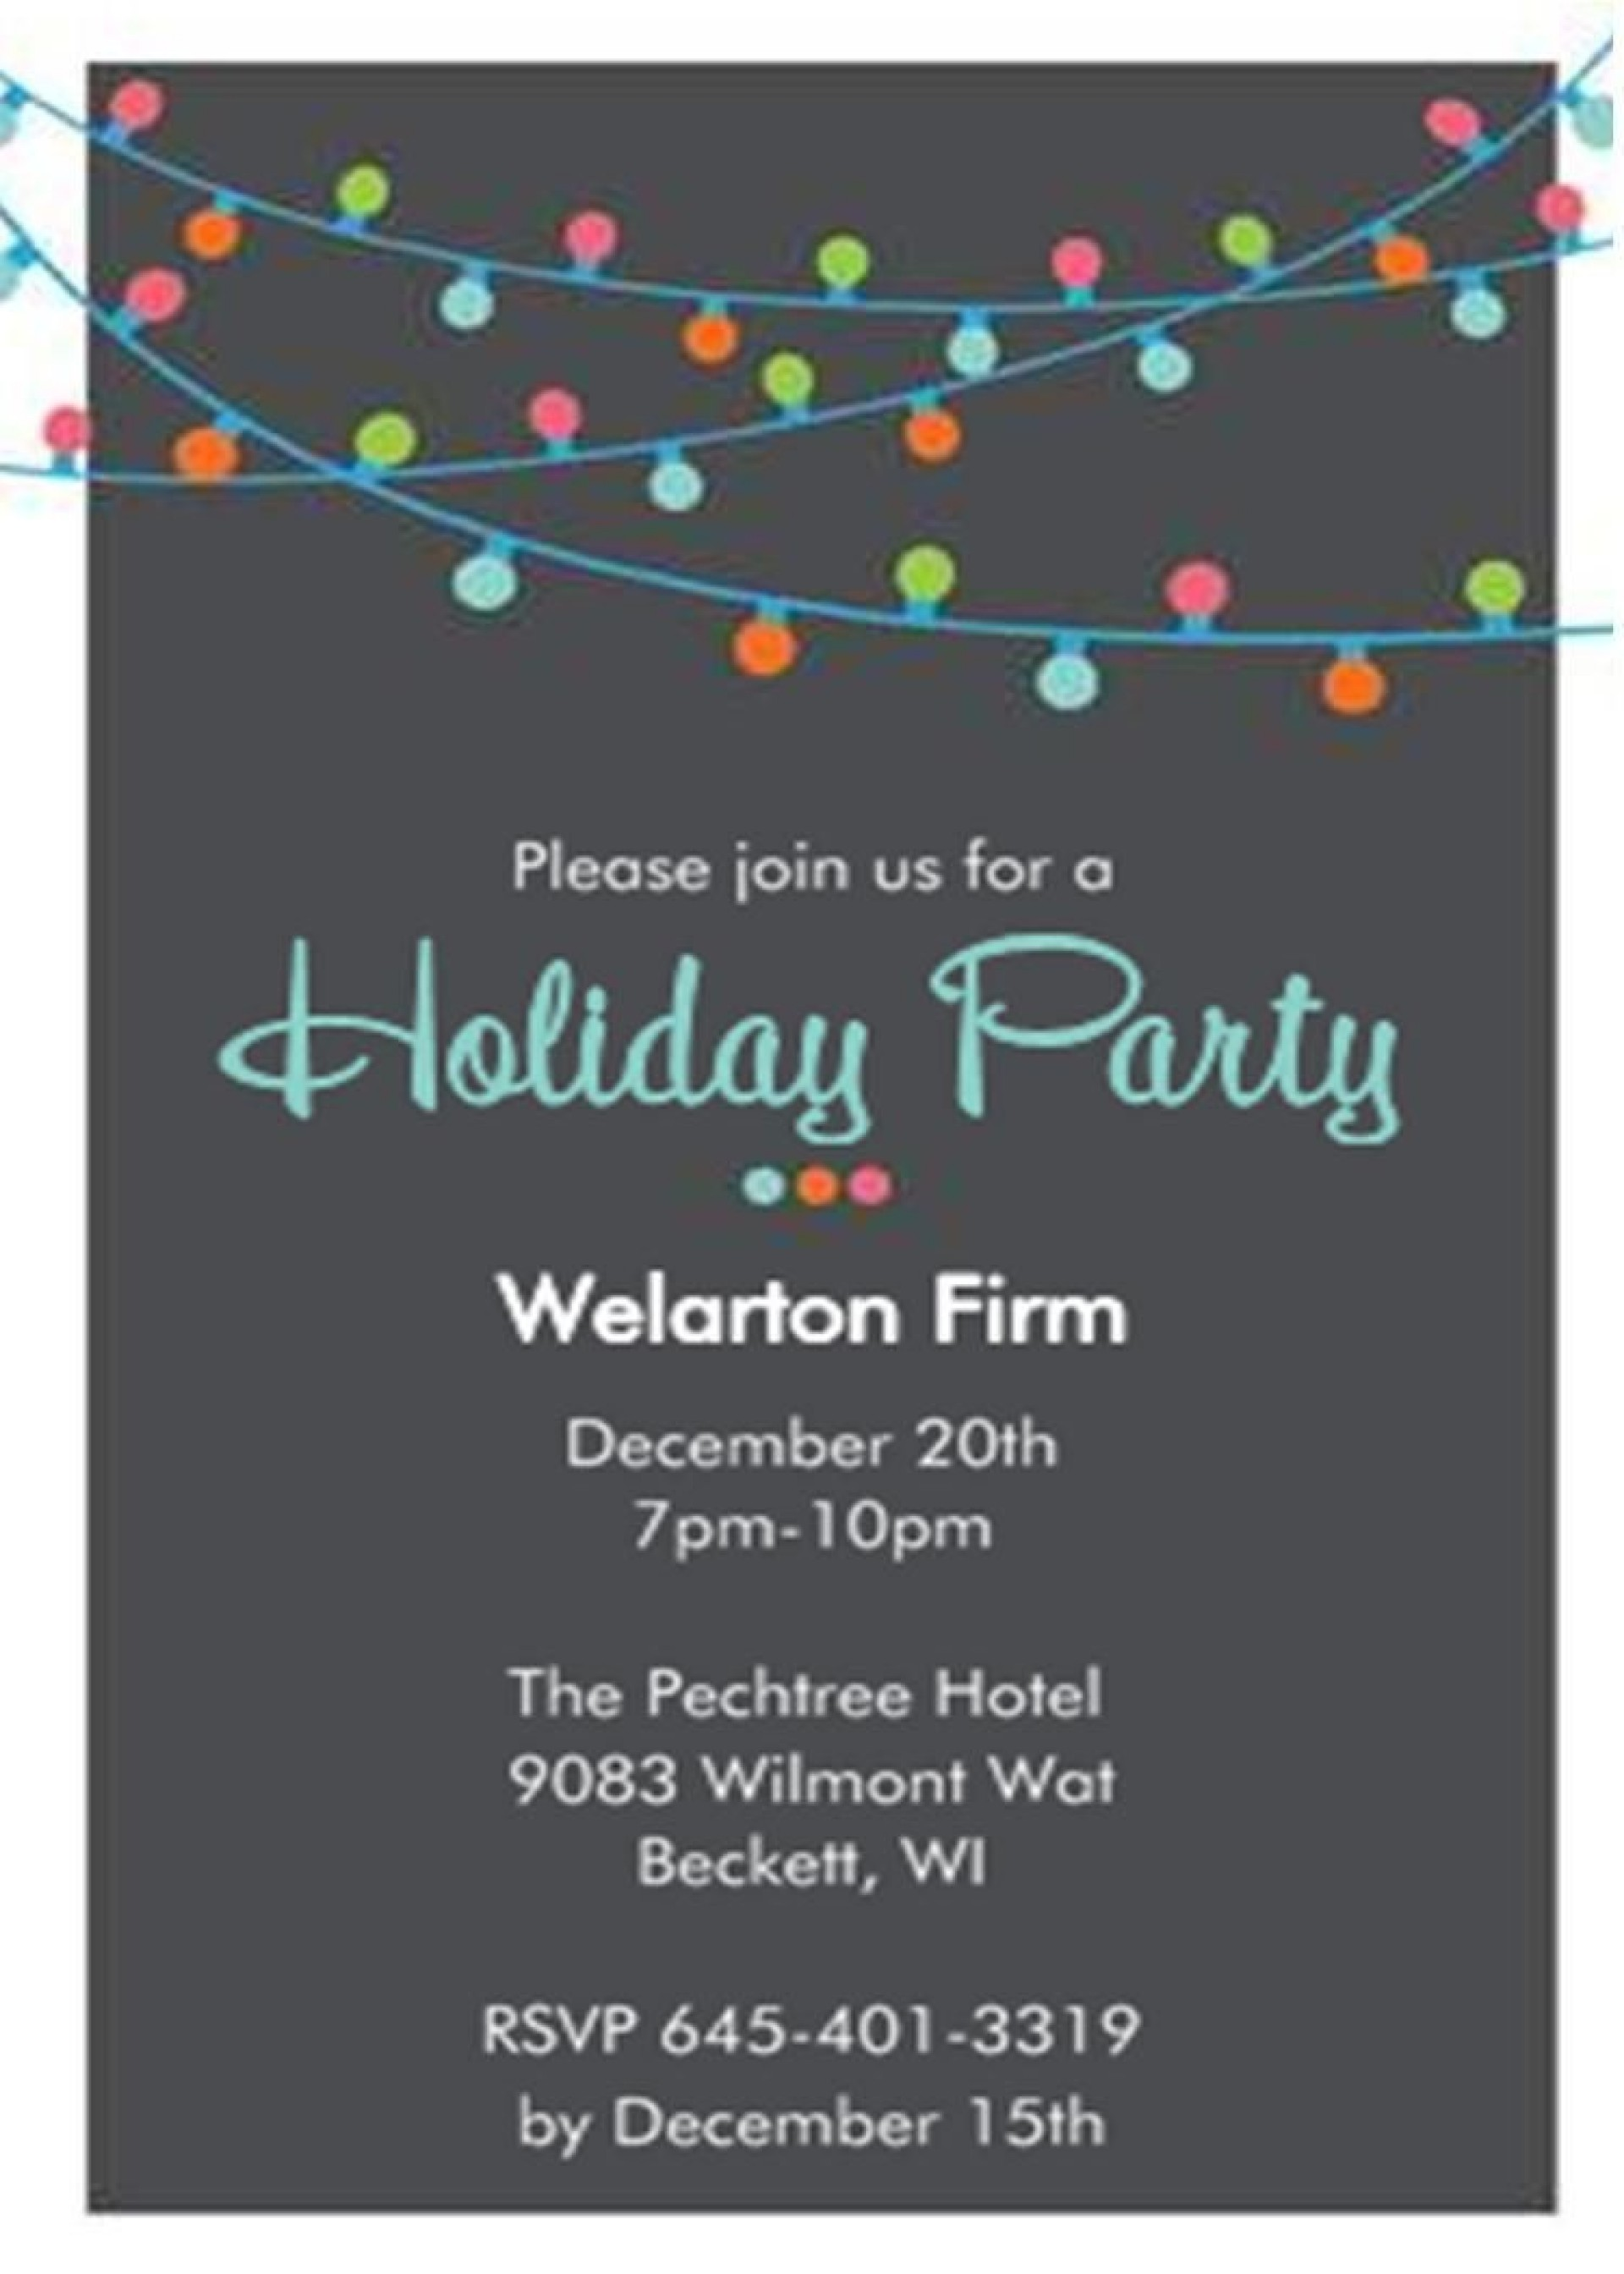 004 Striking Free Busines Holiday Party Invitation Template Concept  Templates Printable Office1920